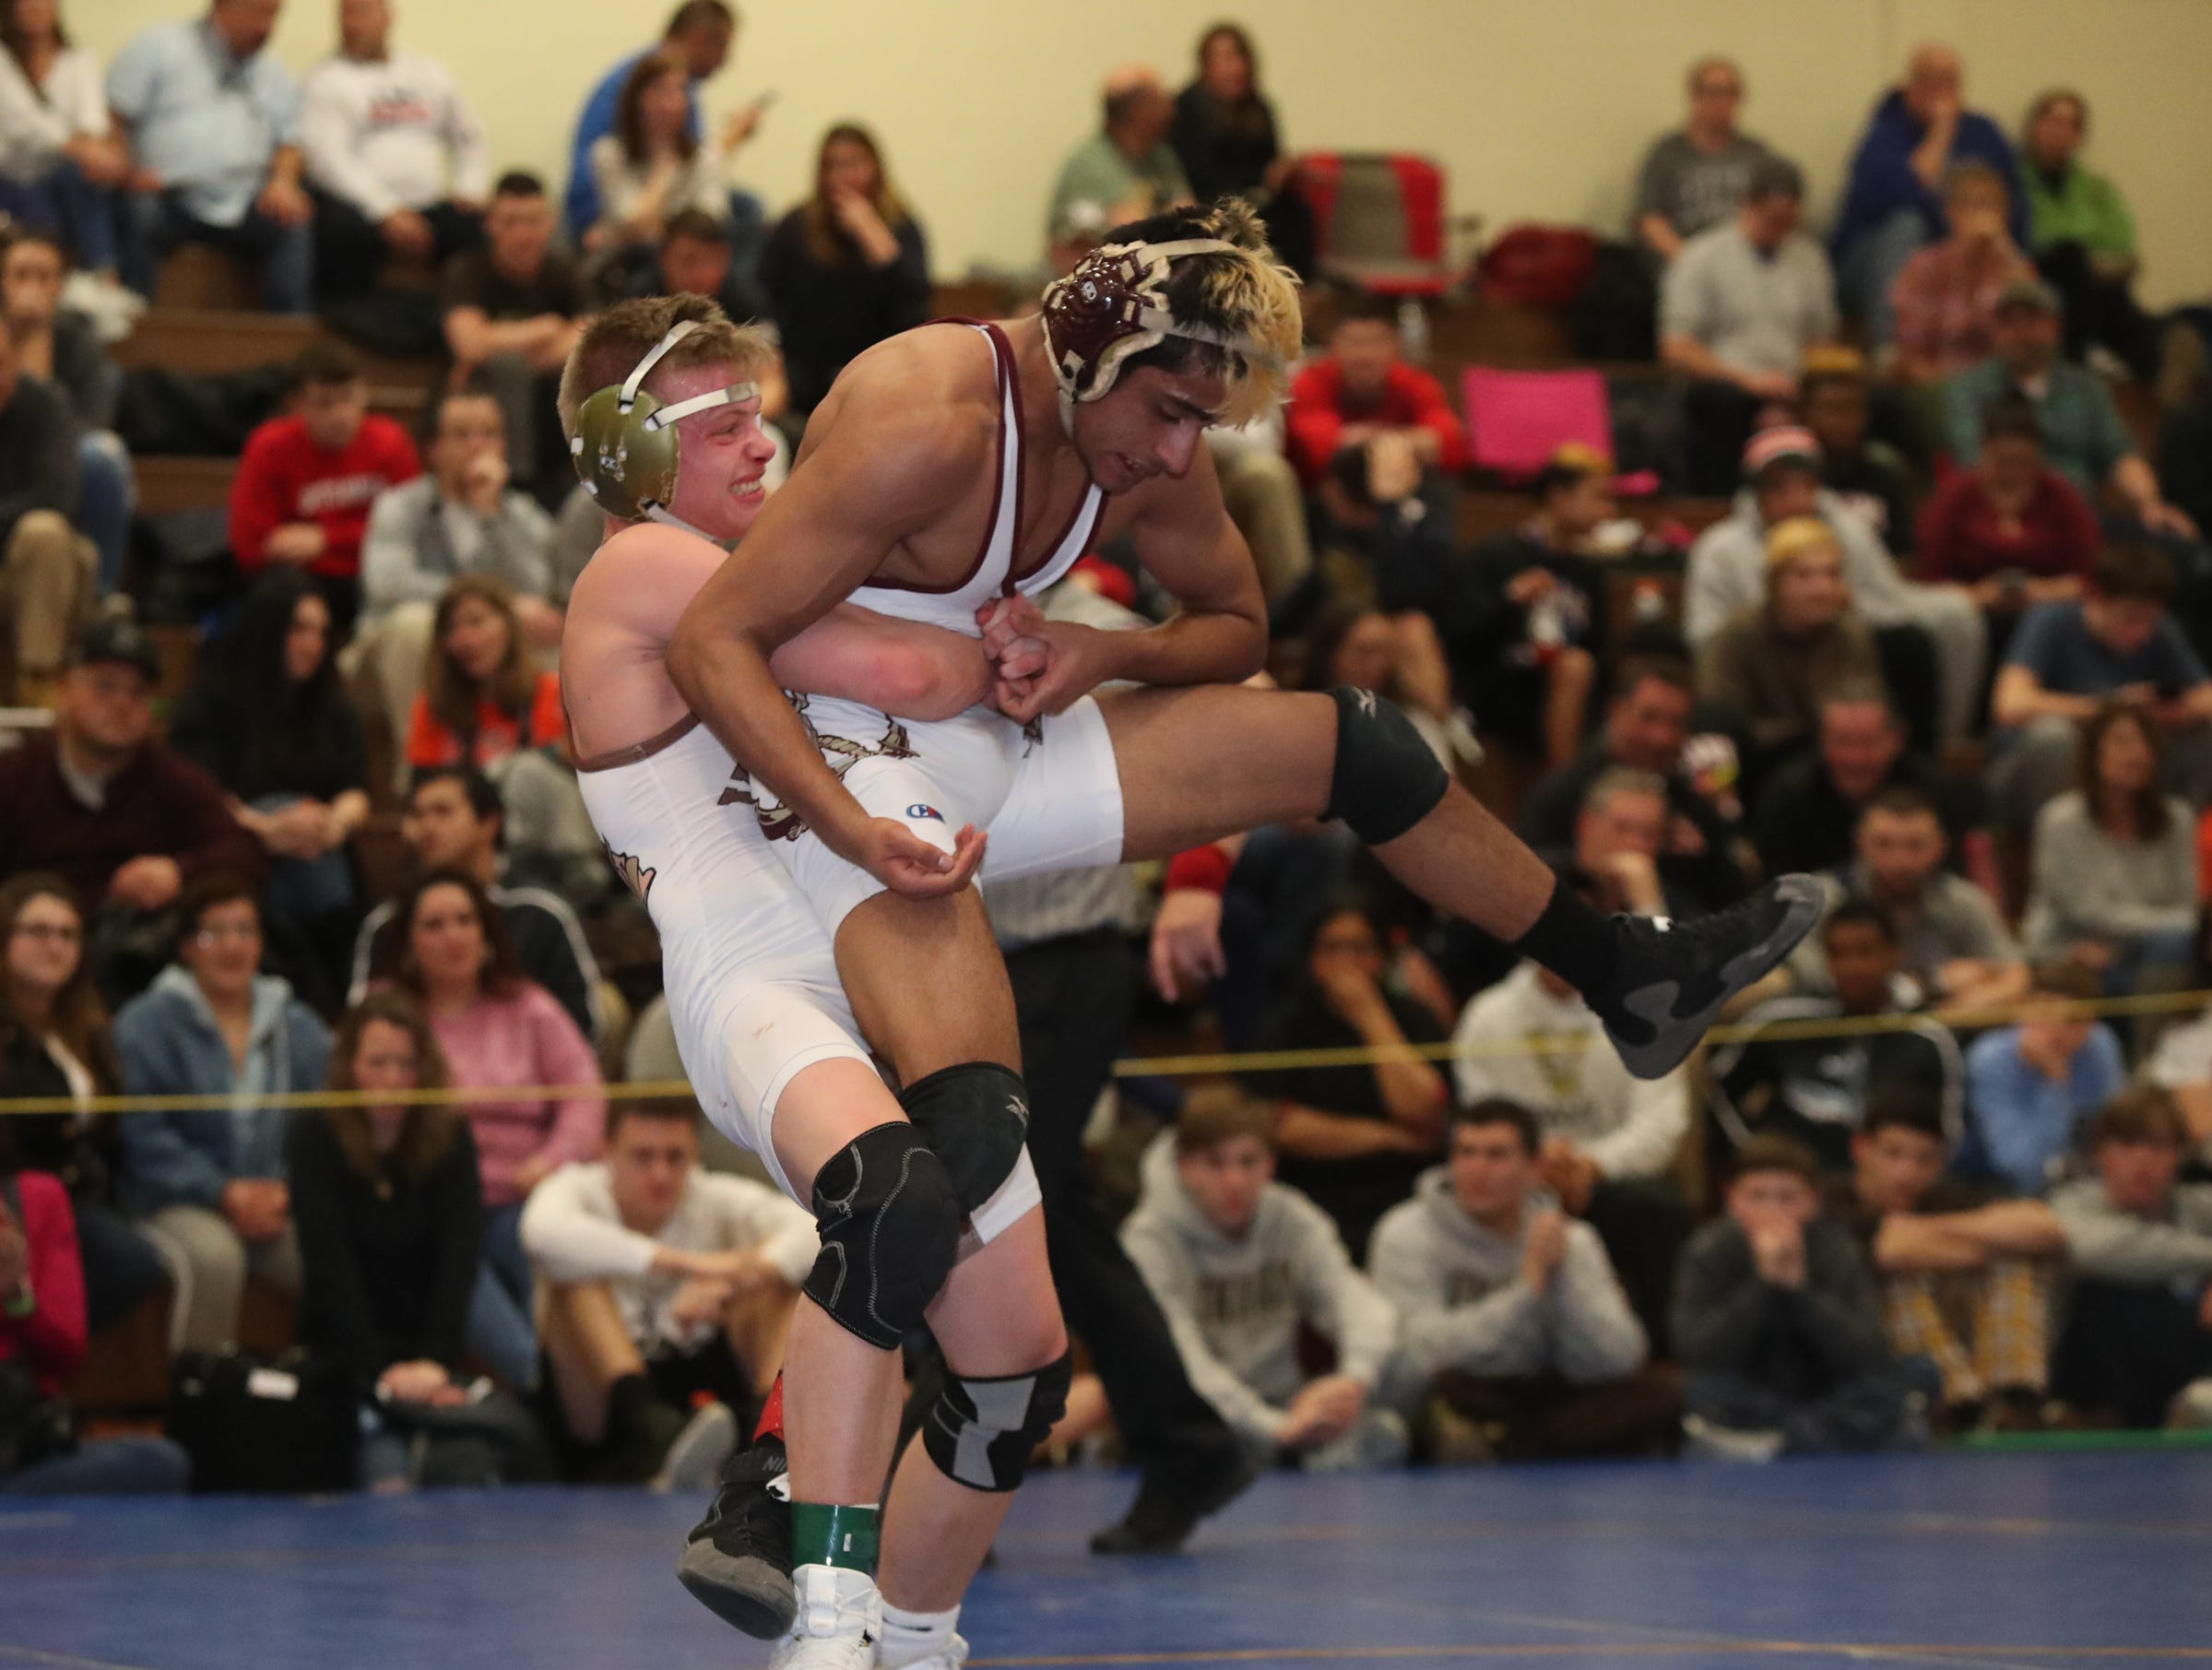 Clarkstown South's James Sullivan defeats Arlington's Firas Zoha in the 132-pound match of the division I wrestling finals at Clarkstown South High School on Sunday, February 10, 2019.